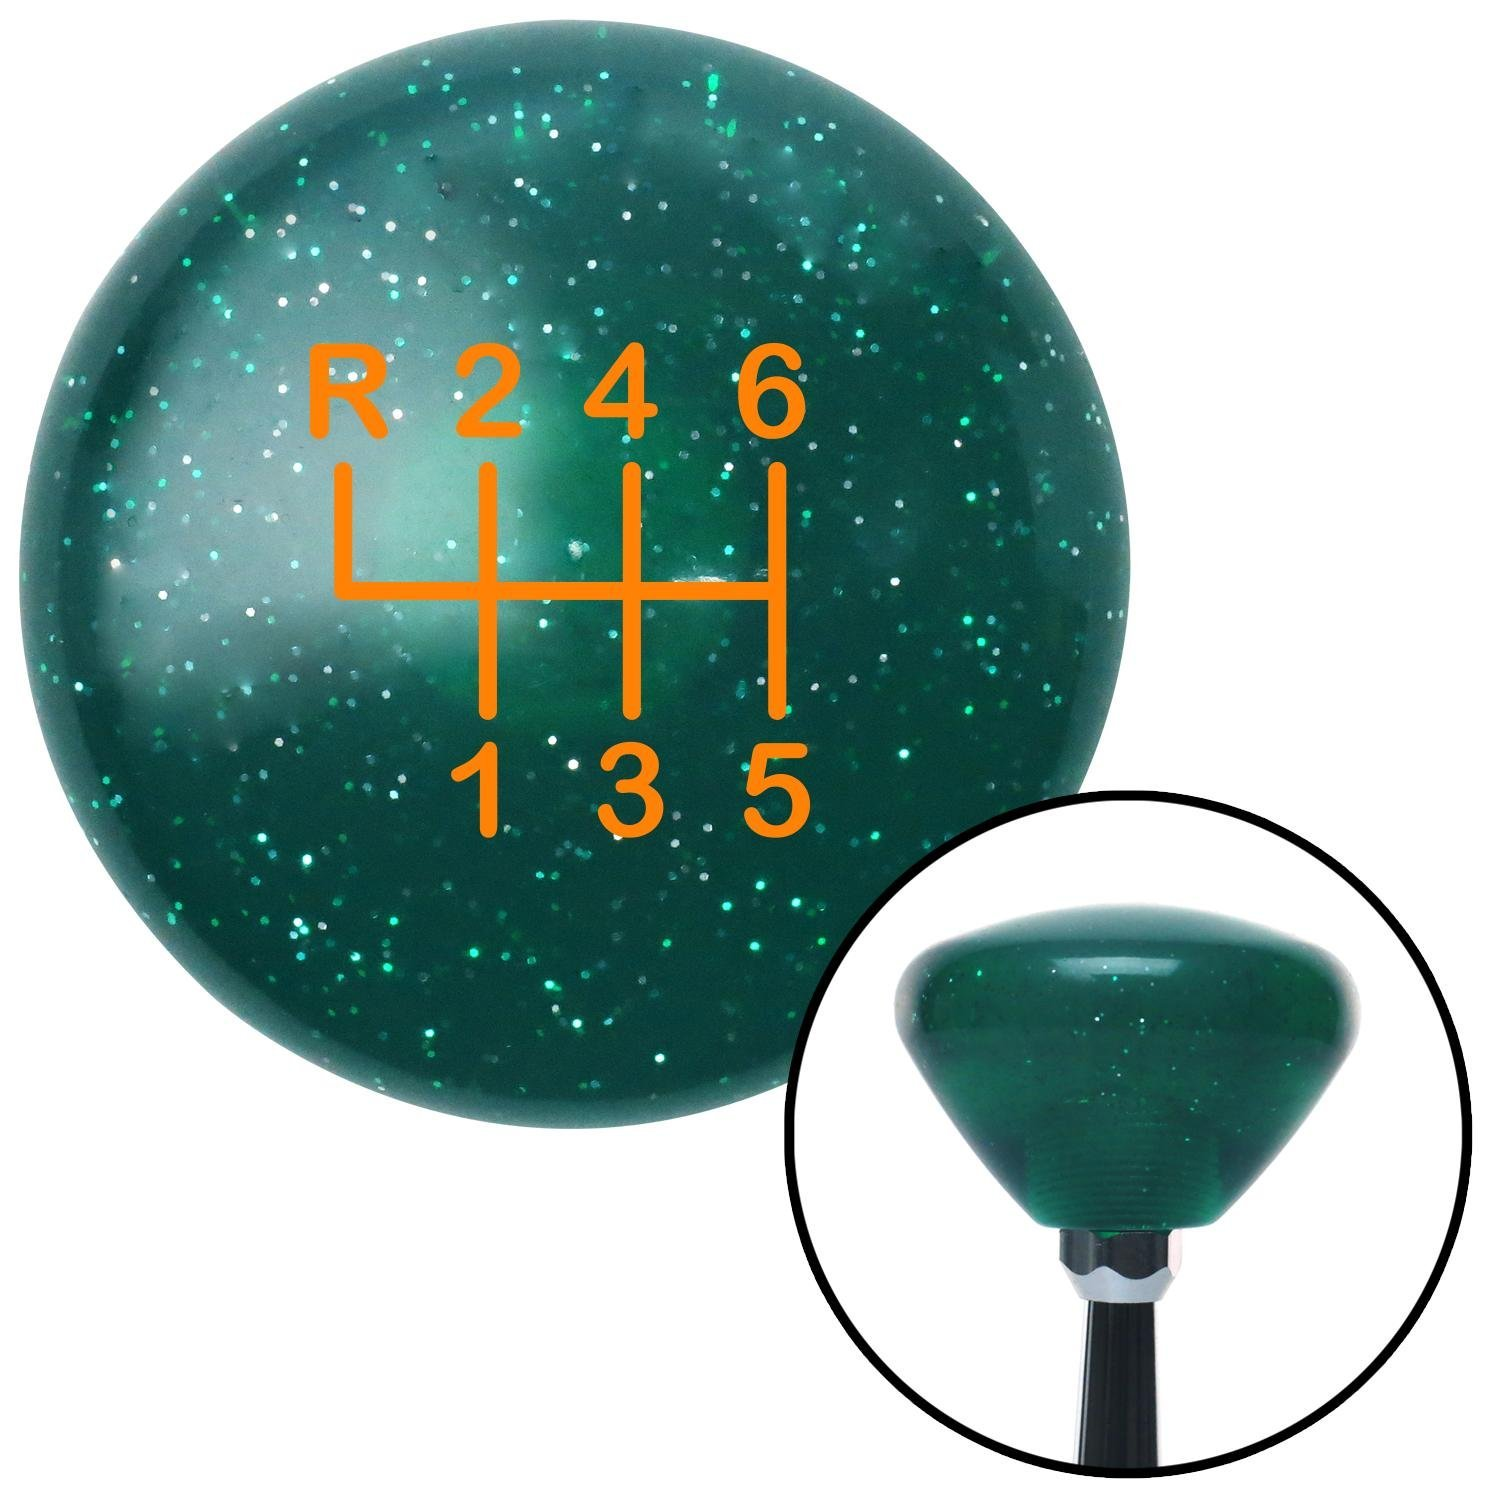 American Shifter 208478 Green Retro Metal Flake Shift Knob with M16 x 1.5 Insert Orange Shift Pattern 19n